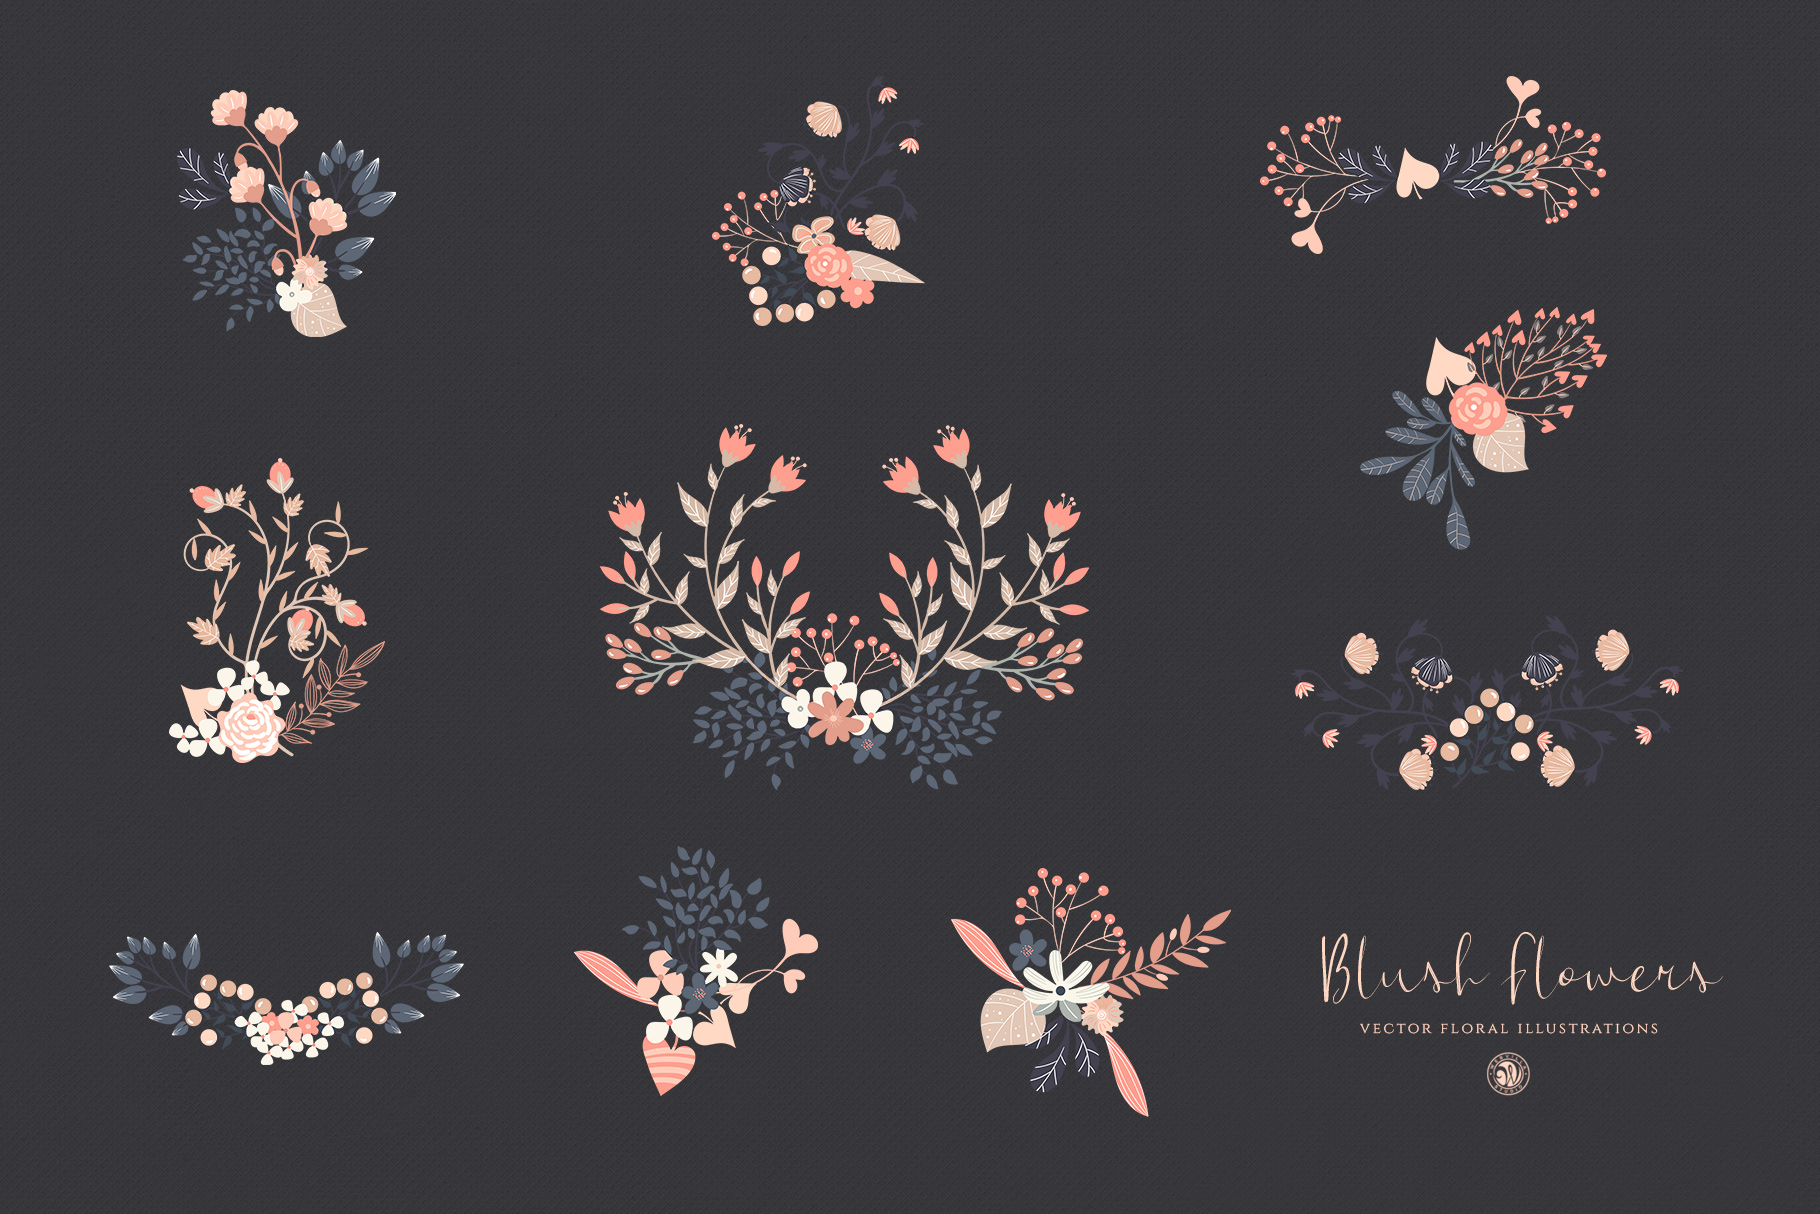 Blush Flowers example image 6